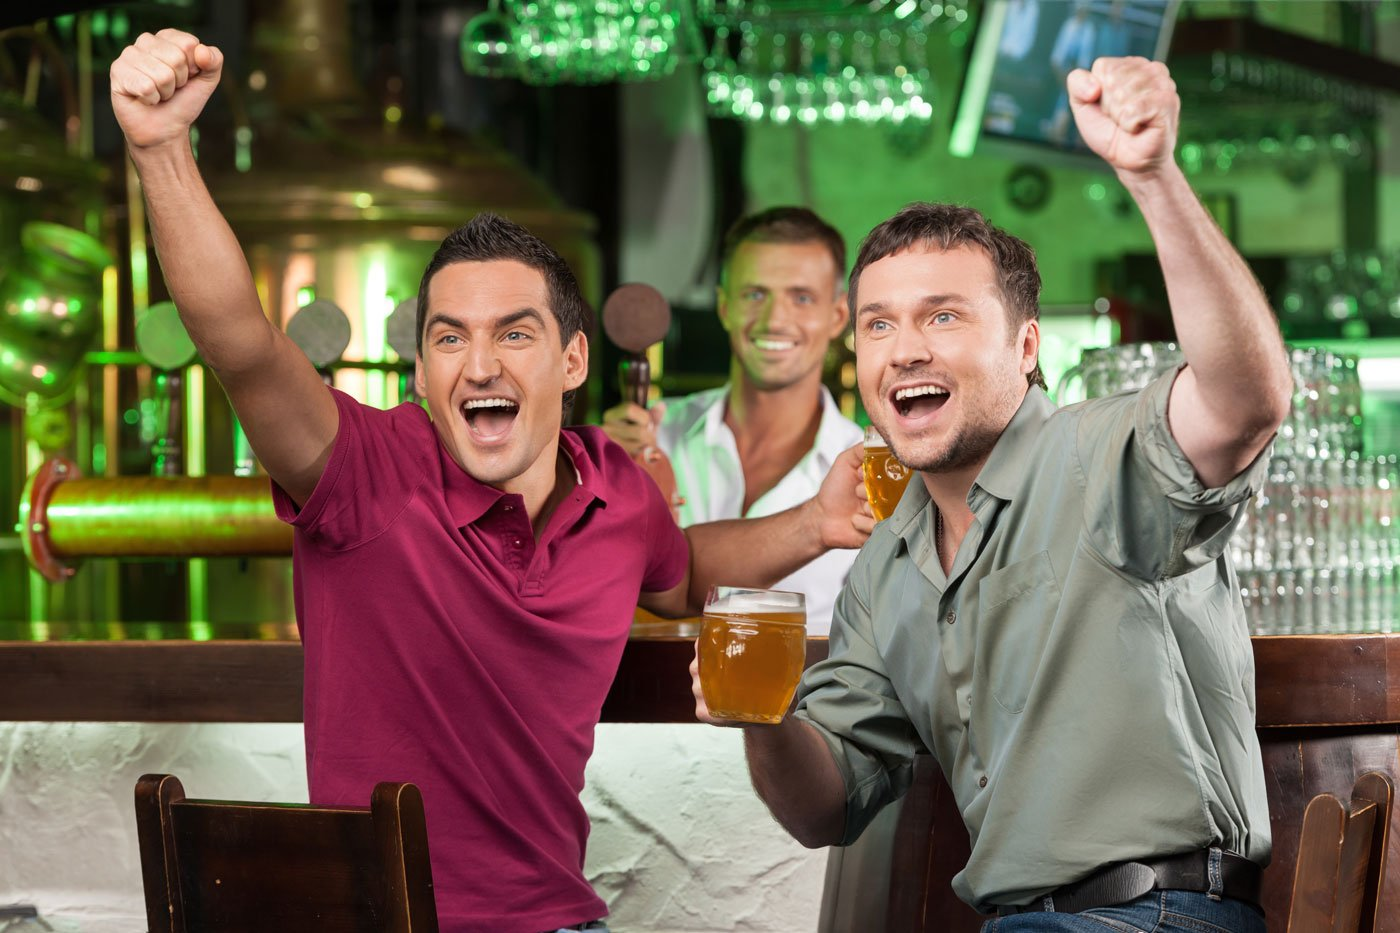 Group of friends celebrating with beer mug in hand